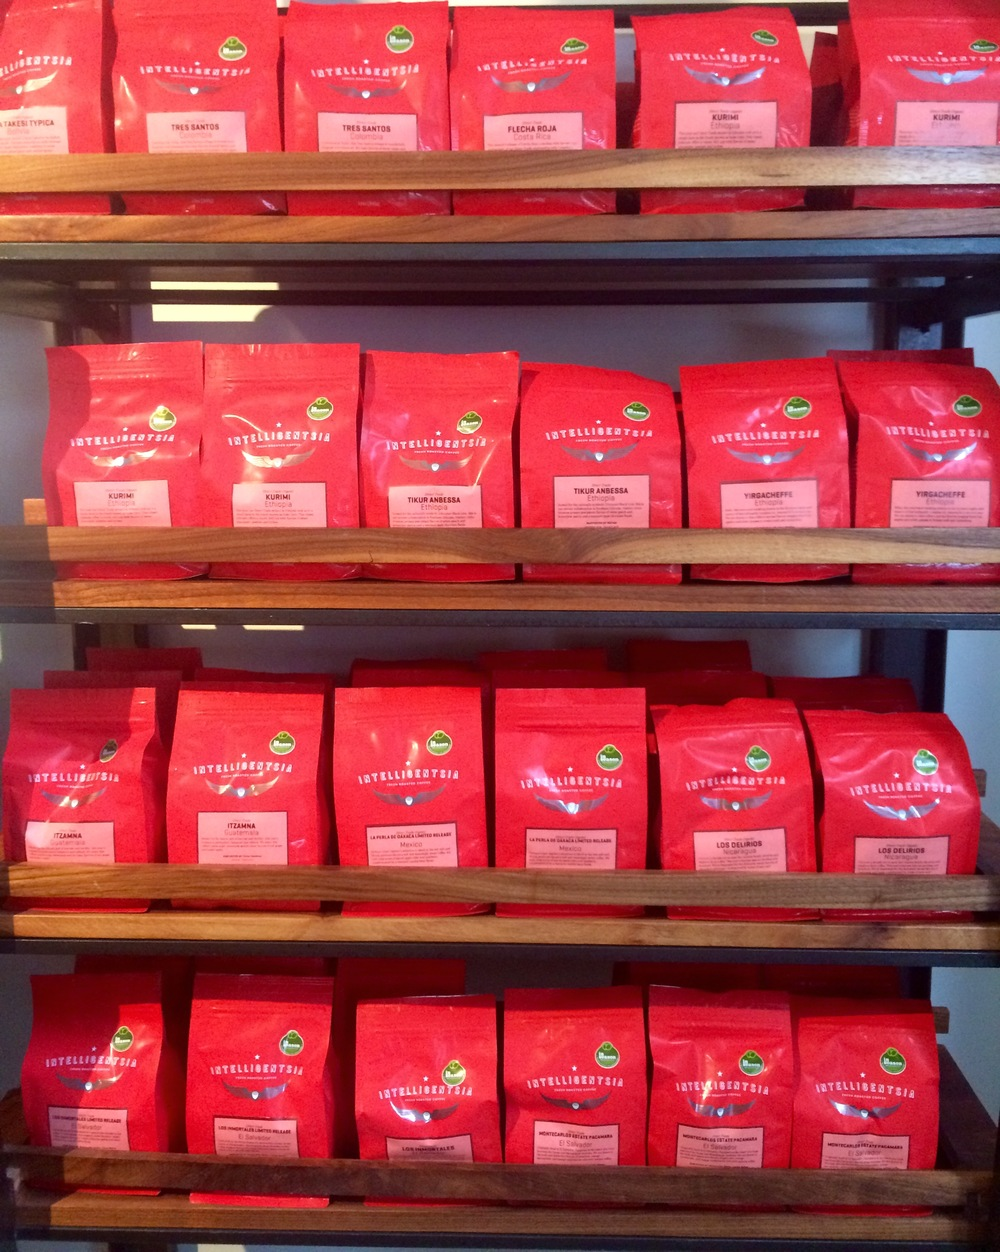 :: couldn't resist this #shelfie of intelligentsia beans::